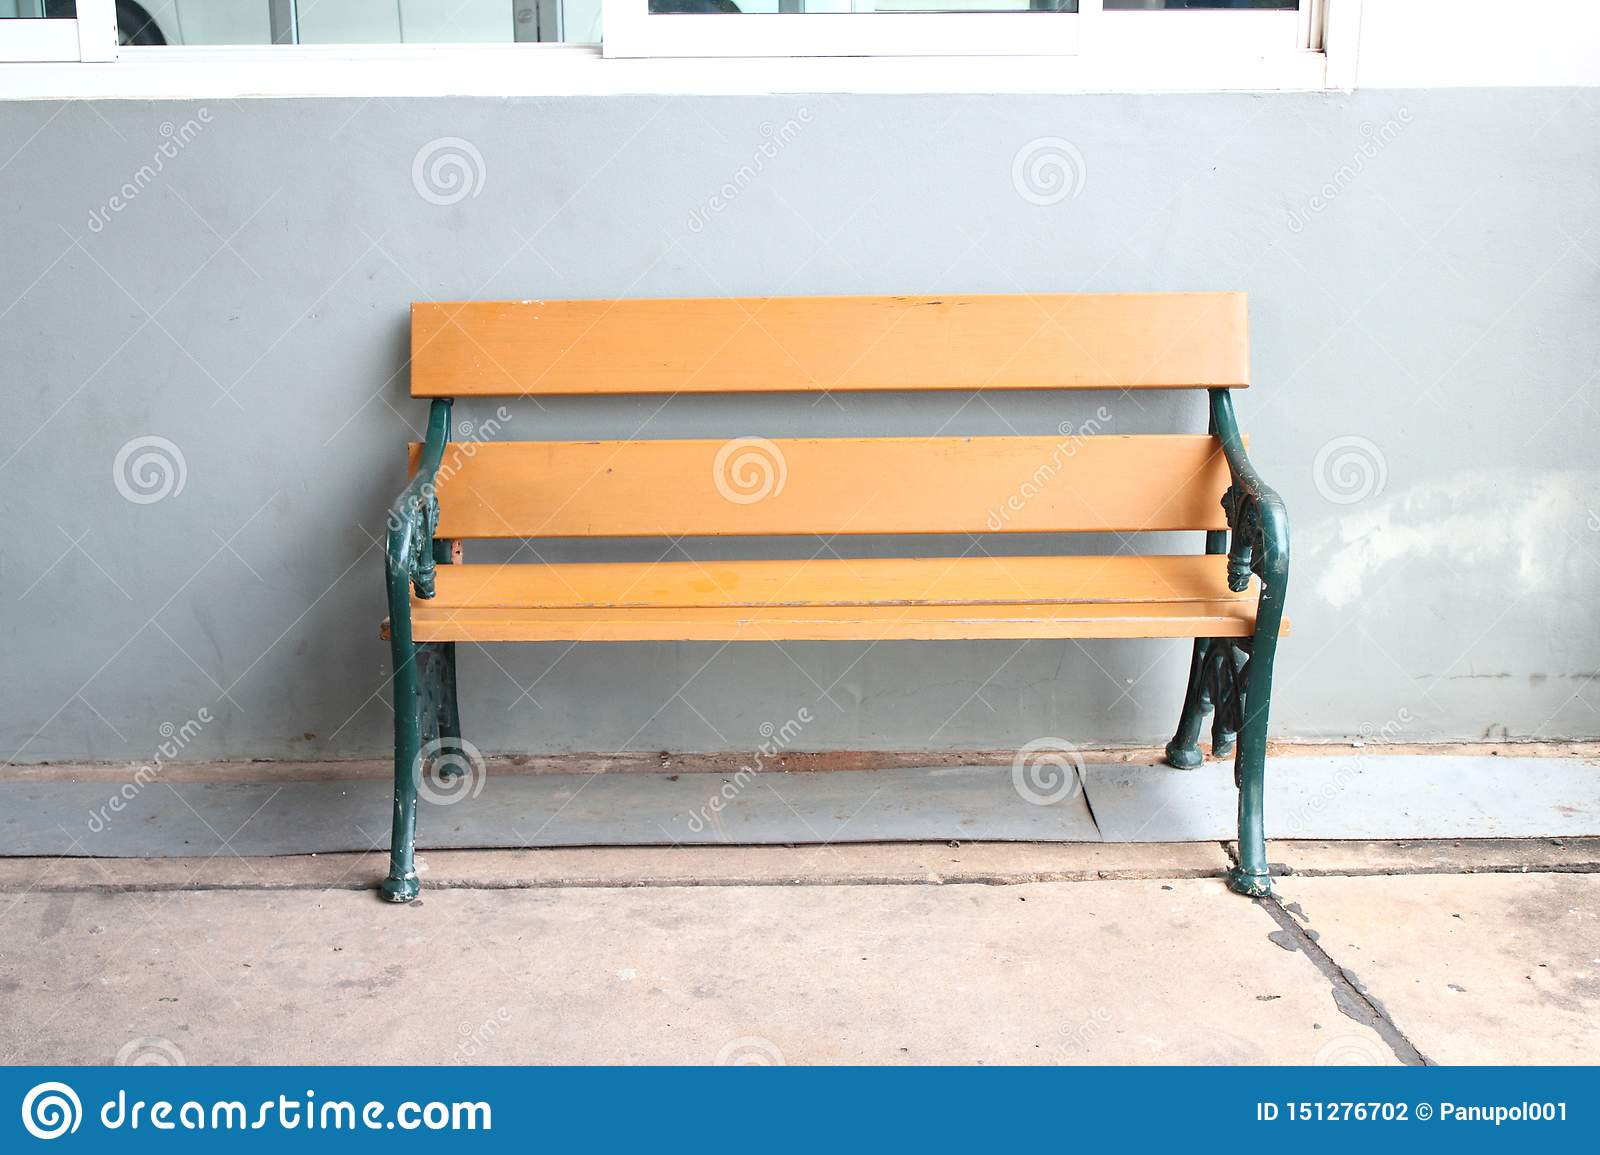 Wood bench on gray background